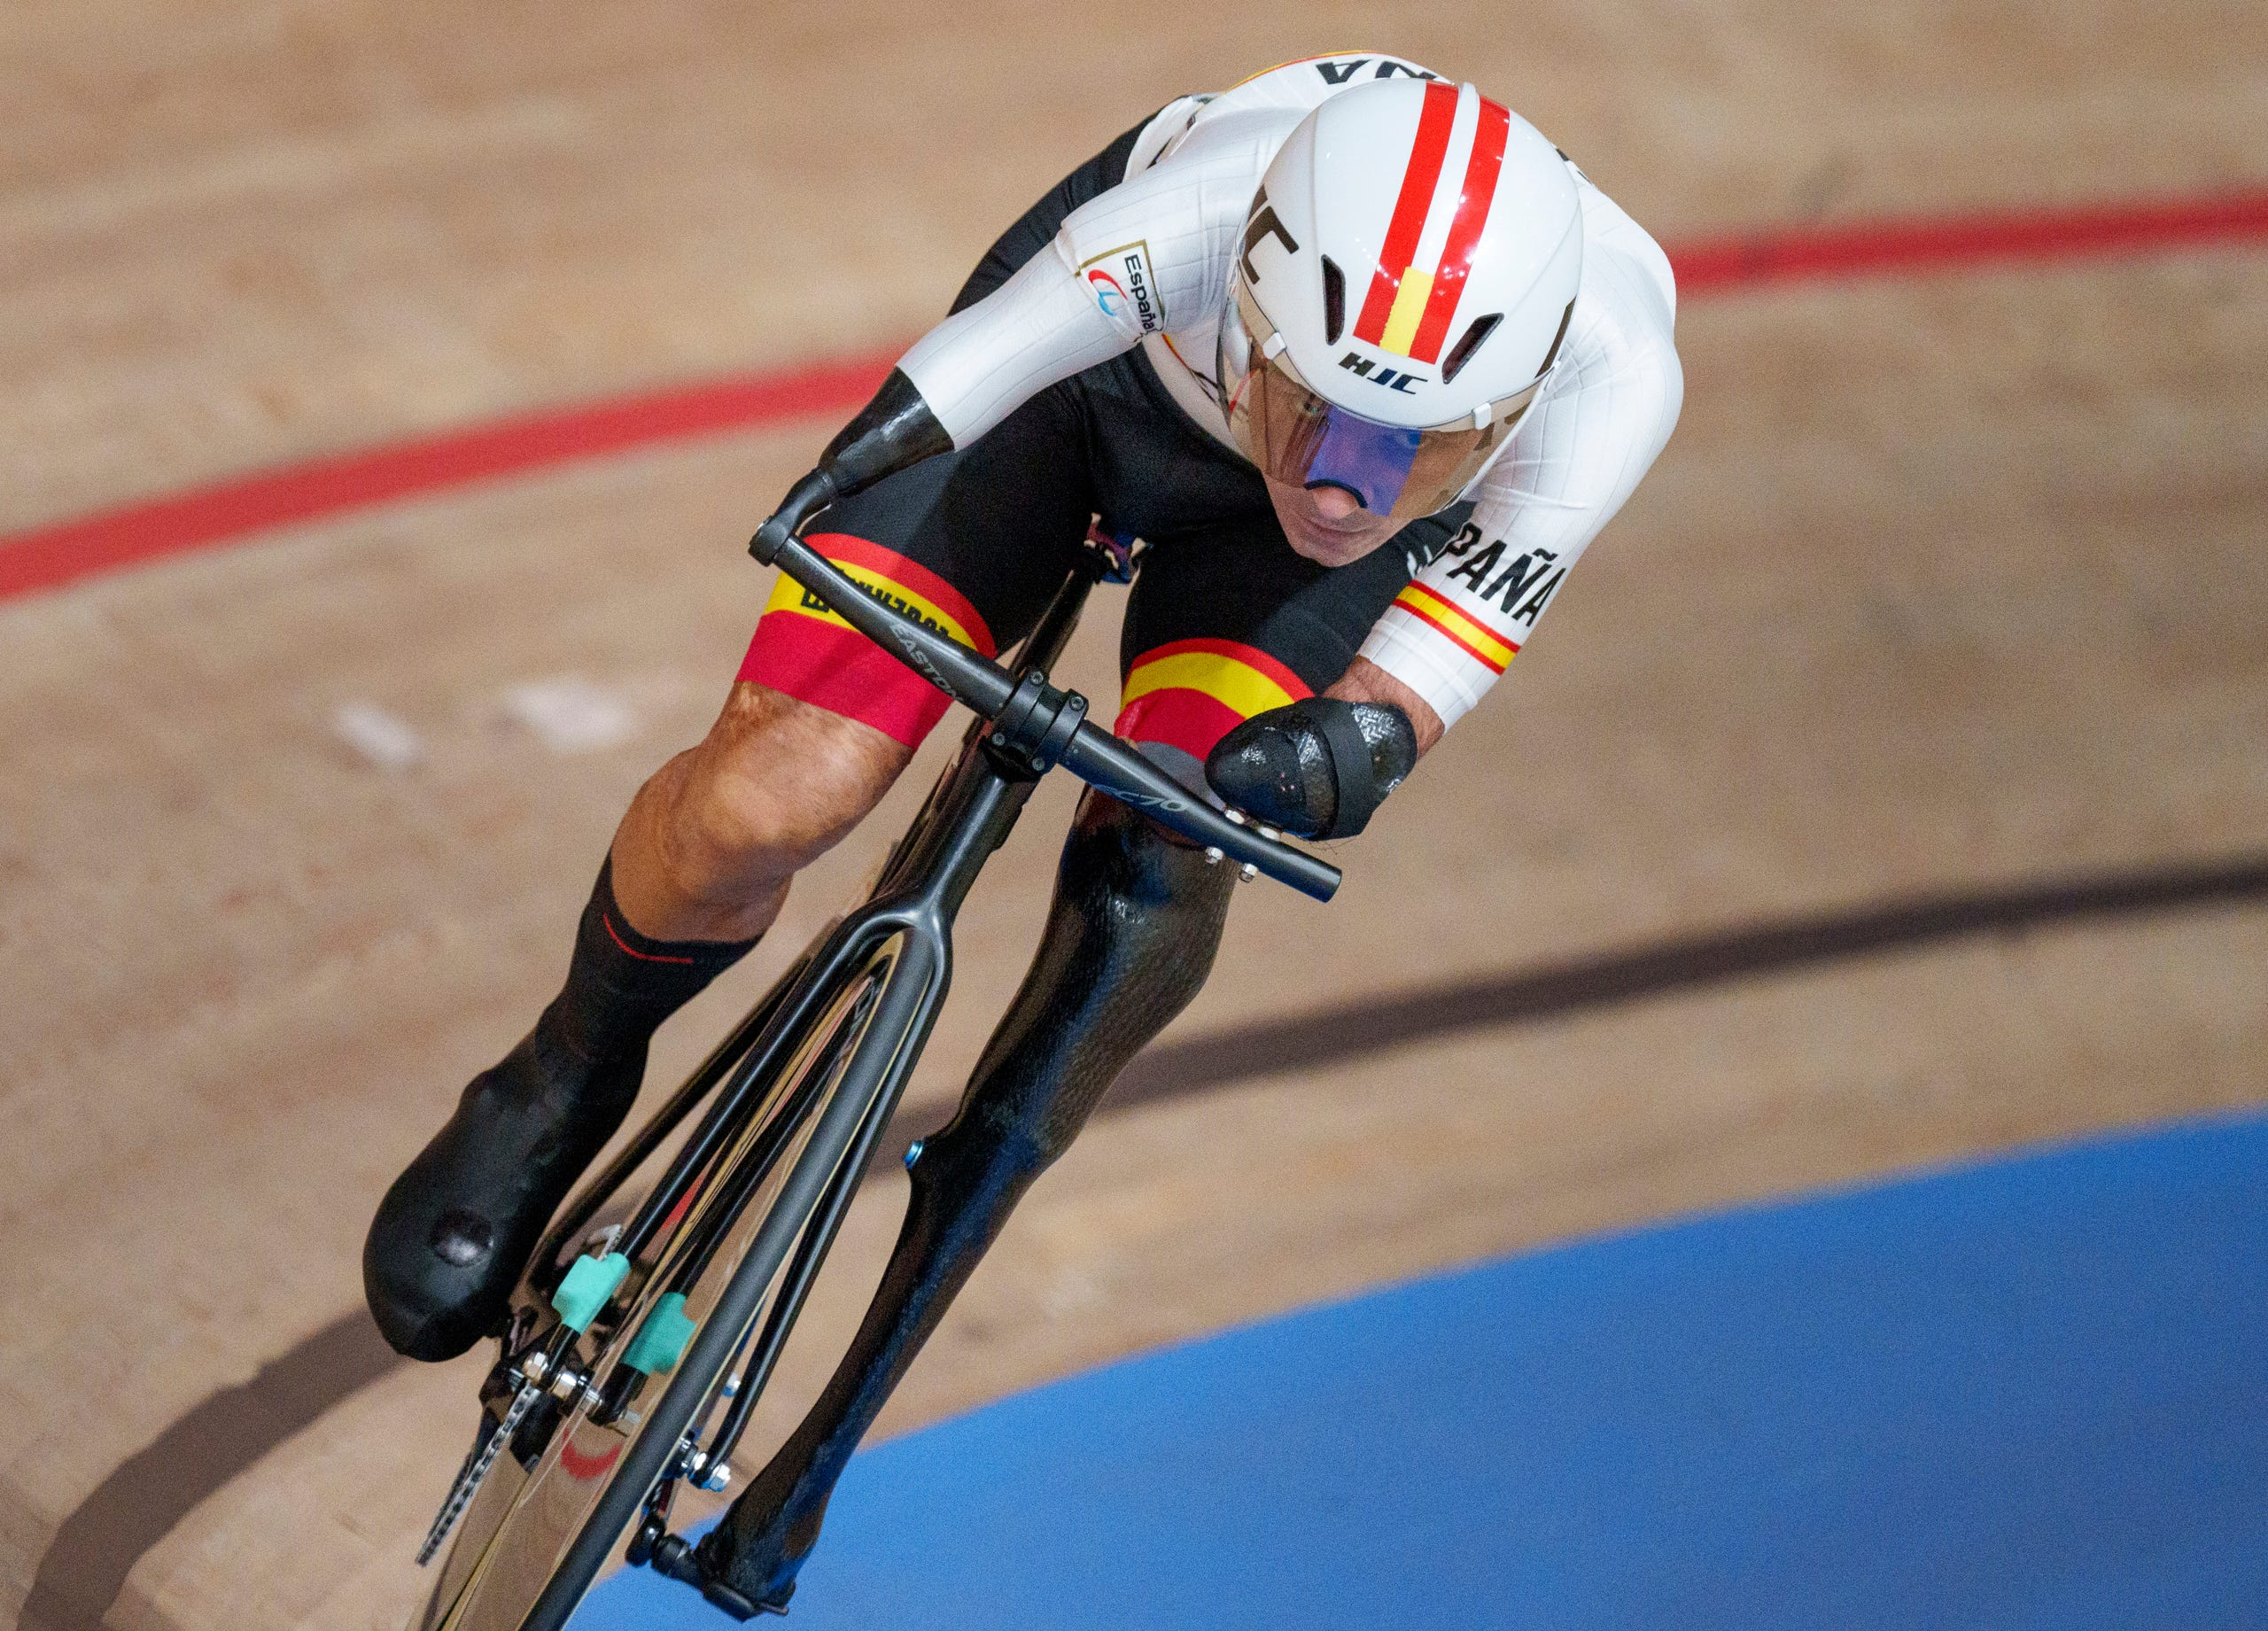 August 26, 2021:  Spain's Ricardo Ten Argiles competes in the Track Cycling Men's C4 1000m Time Trial during the Tokyo 2020 Paralympic Games in Izu, Japan.